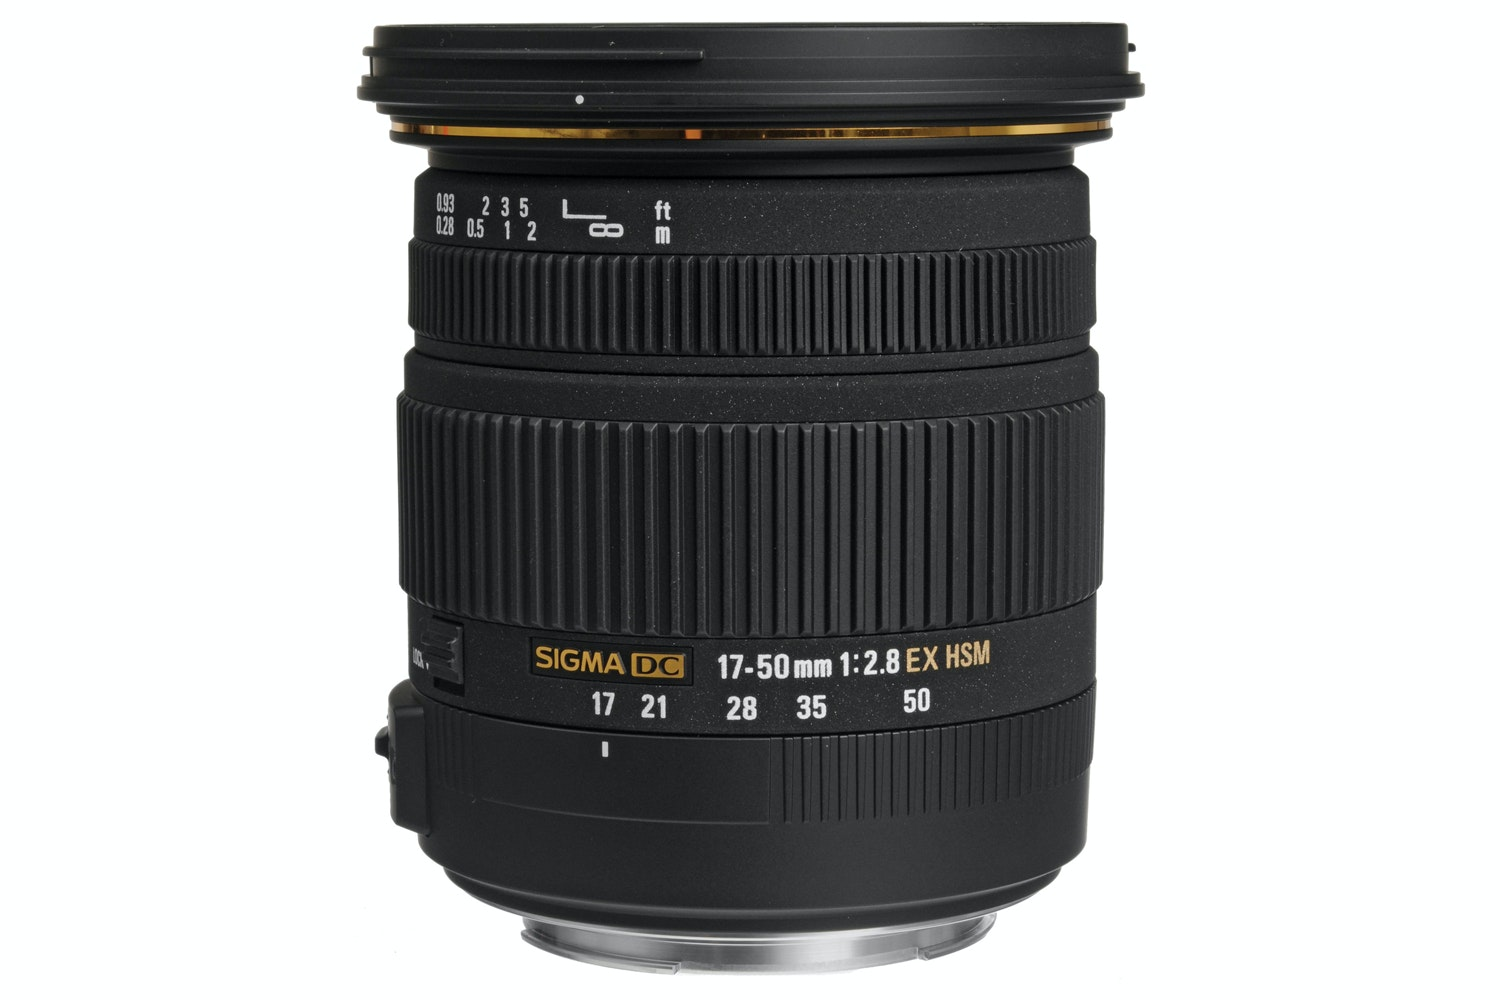 Sigma 17-50mm f2.8 EX DC OS HSM lens for Canon